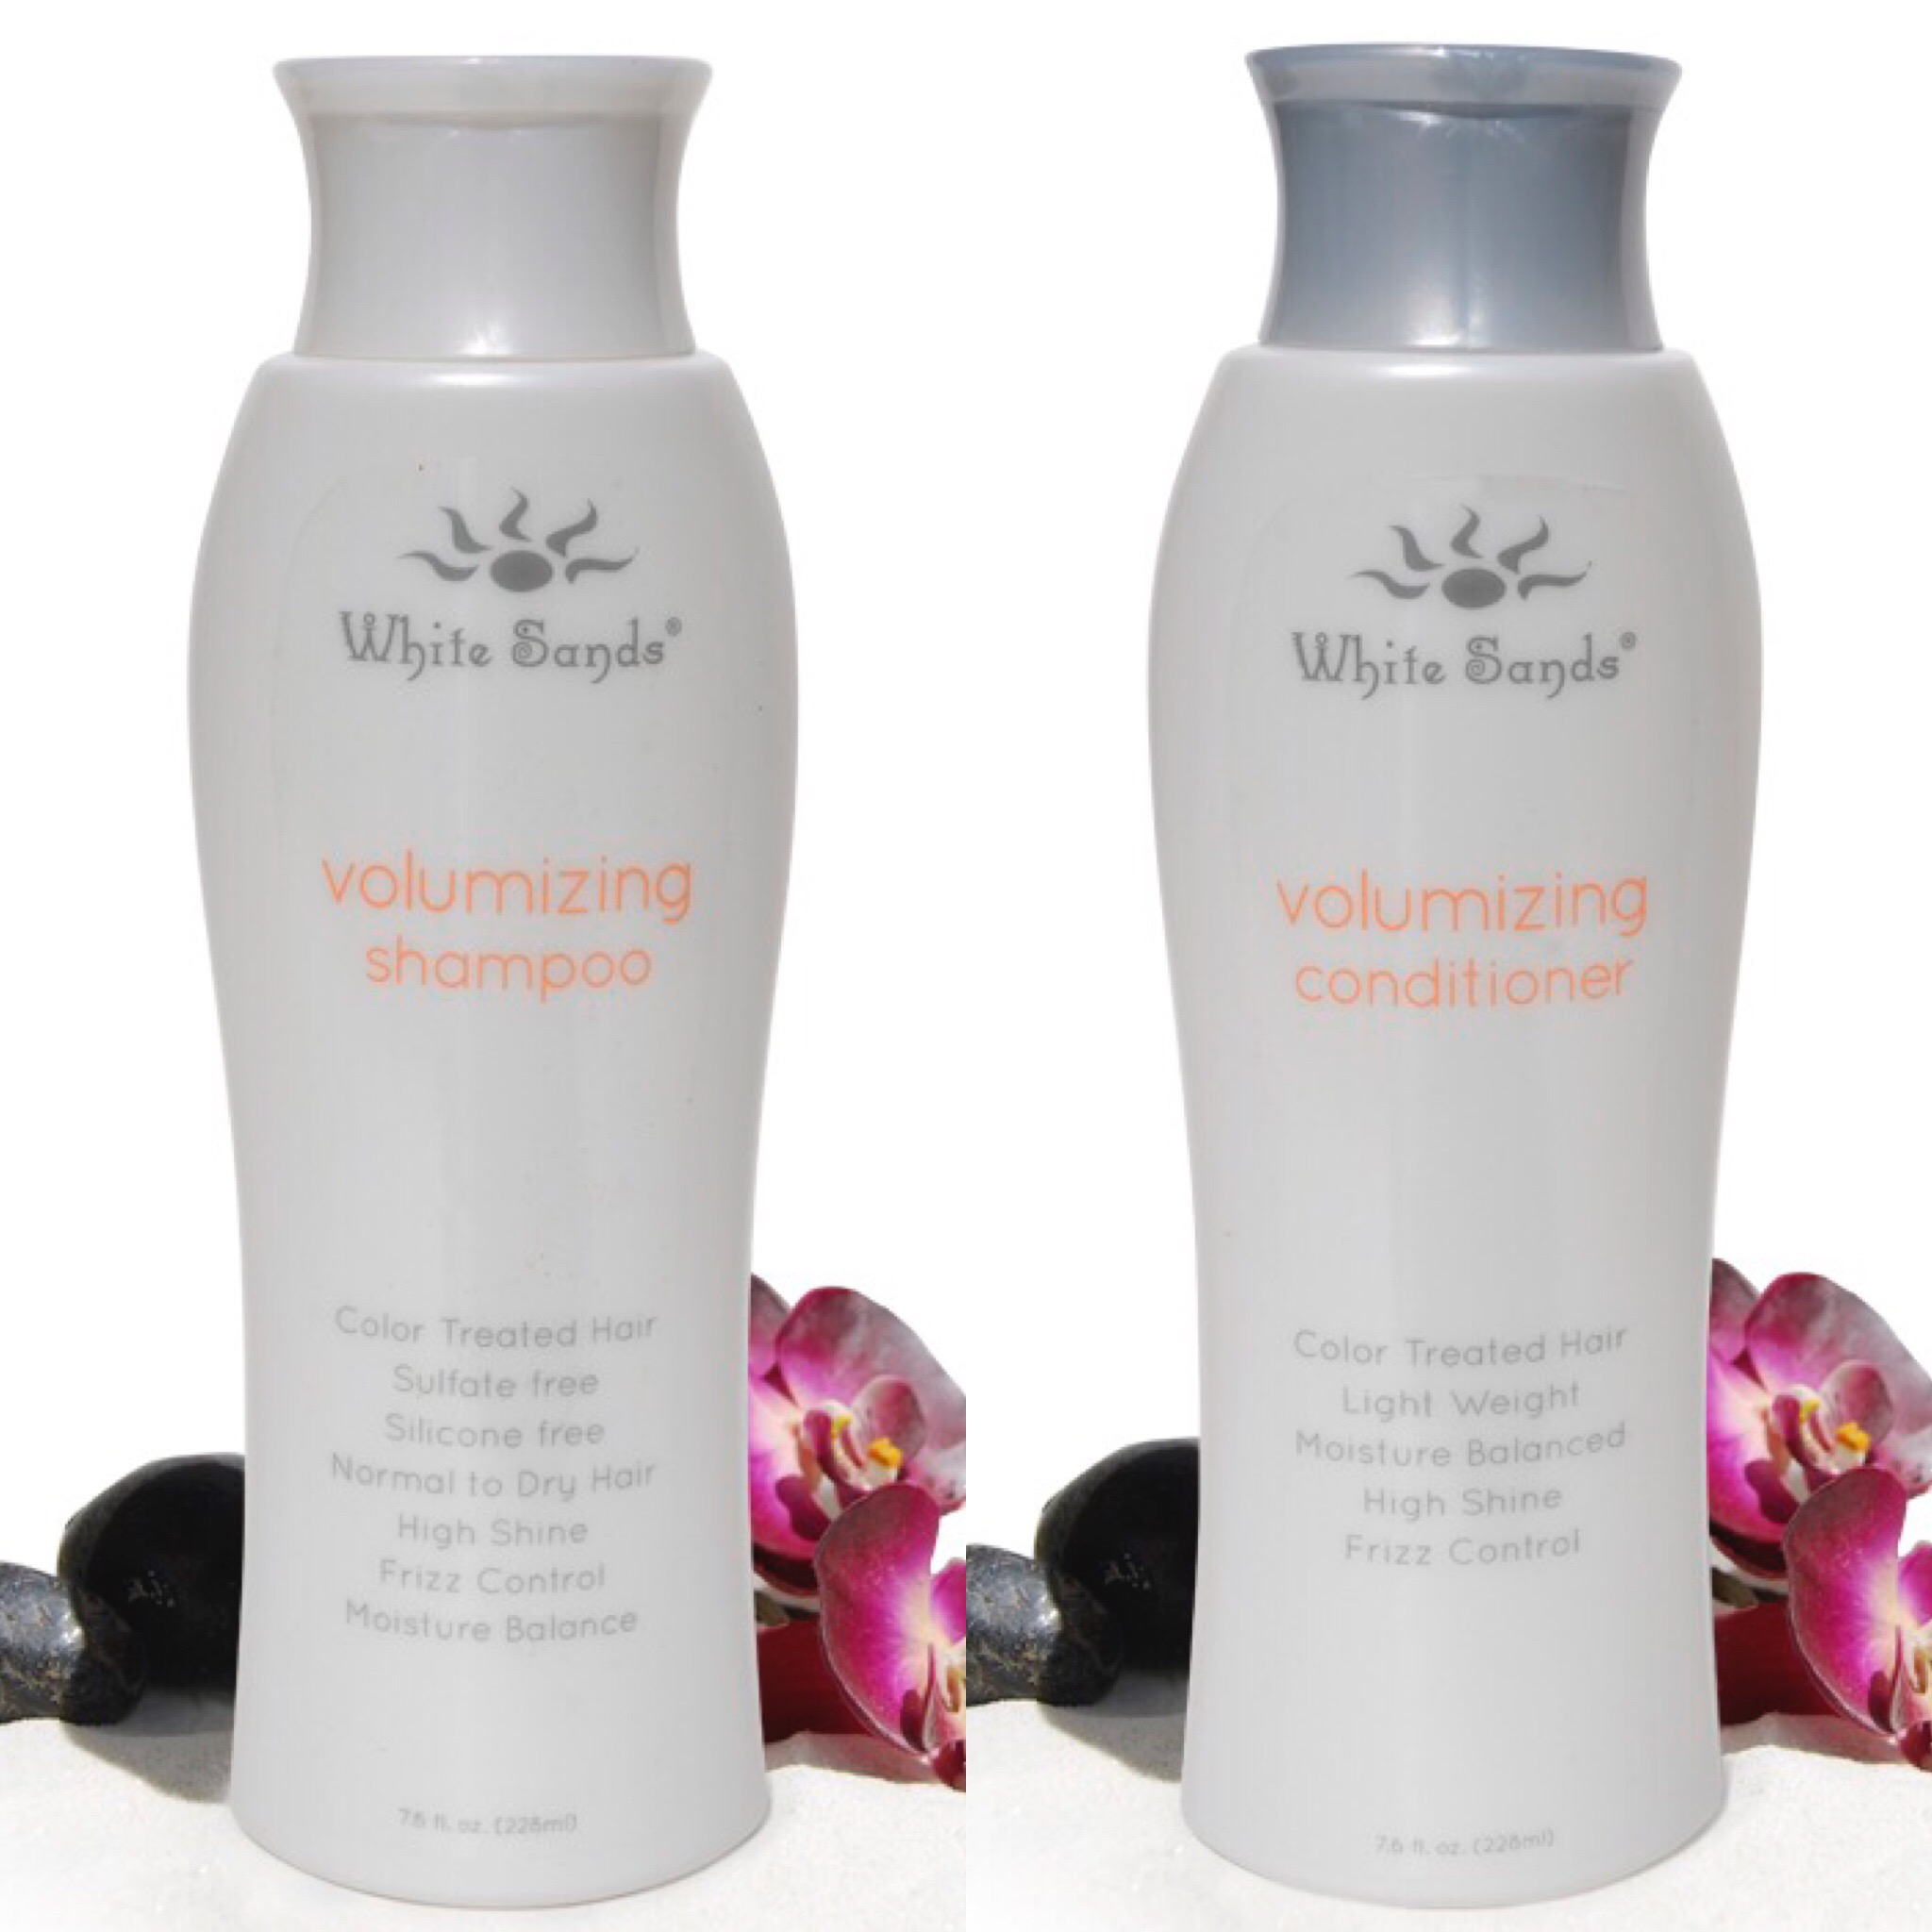 Volumizing Shampoo/Conditioner